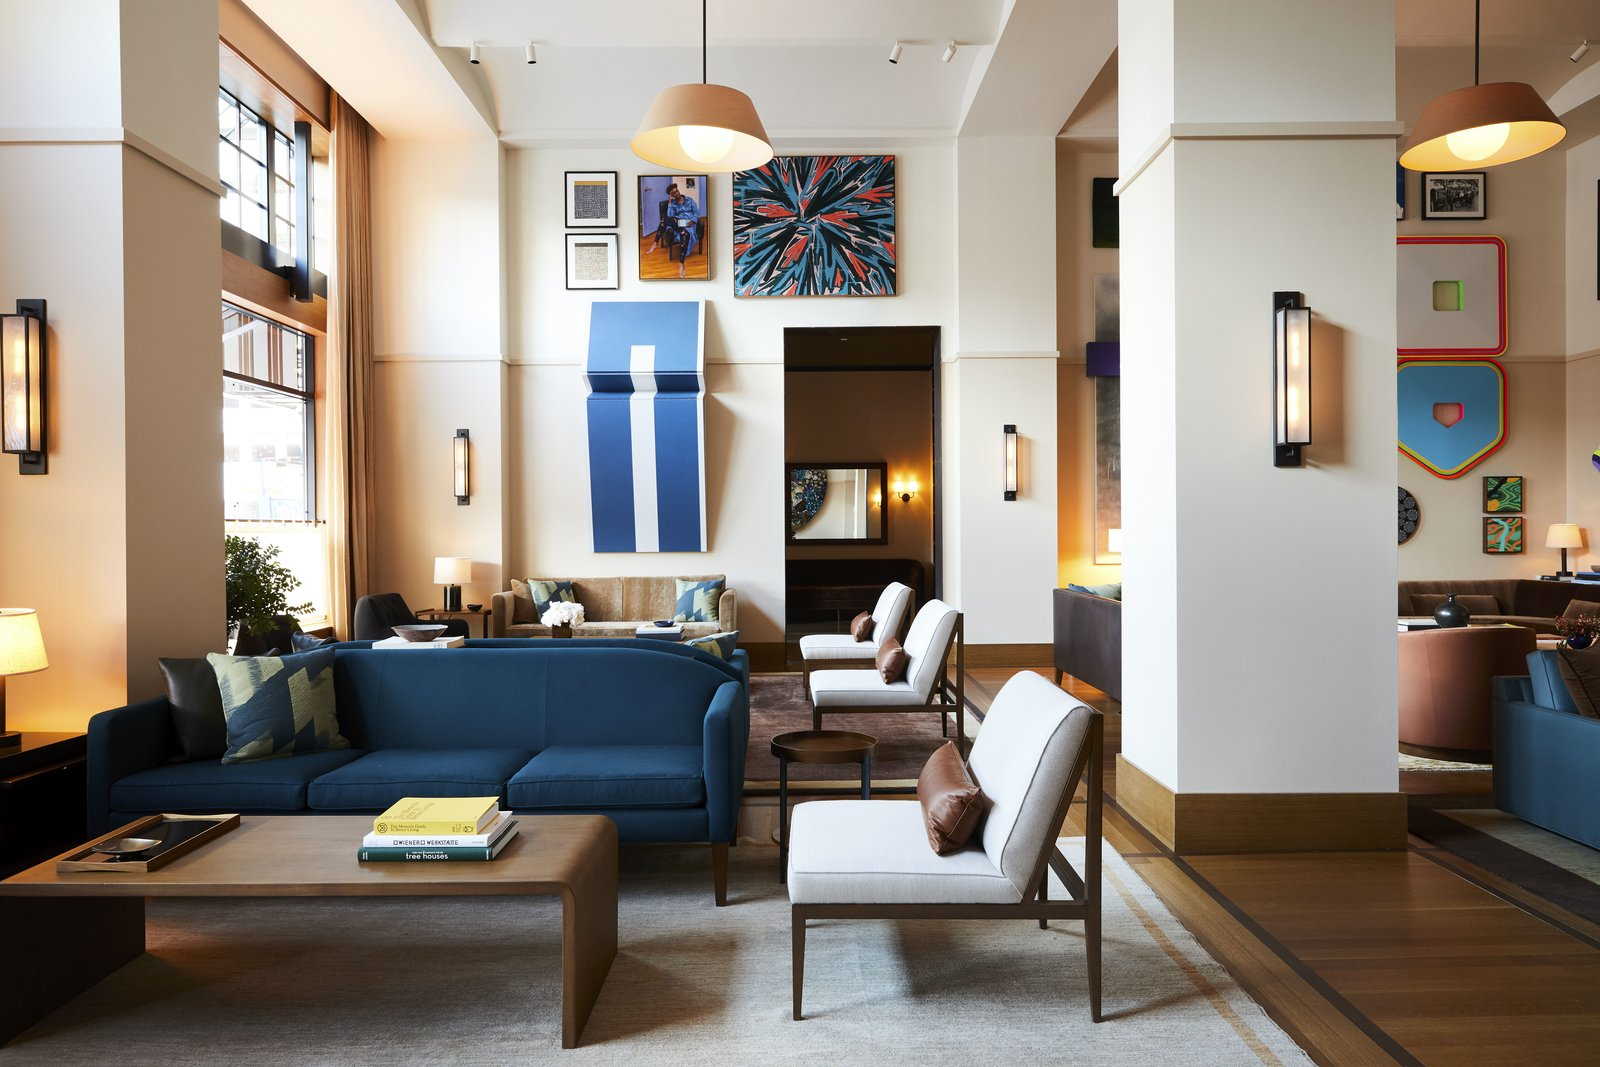 Made-in-America Design Brand Shinola Launches its First Hotel in Detroit